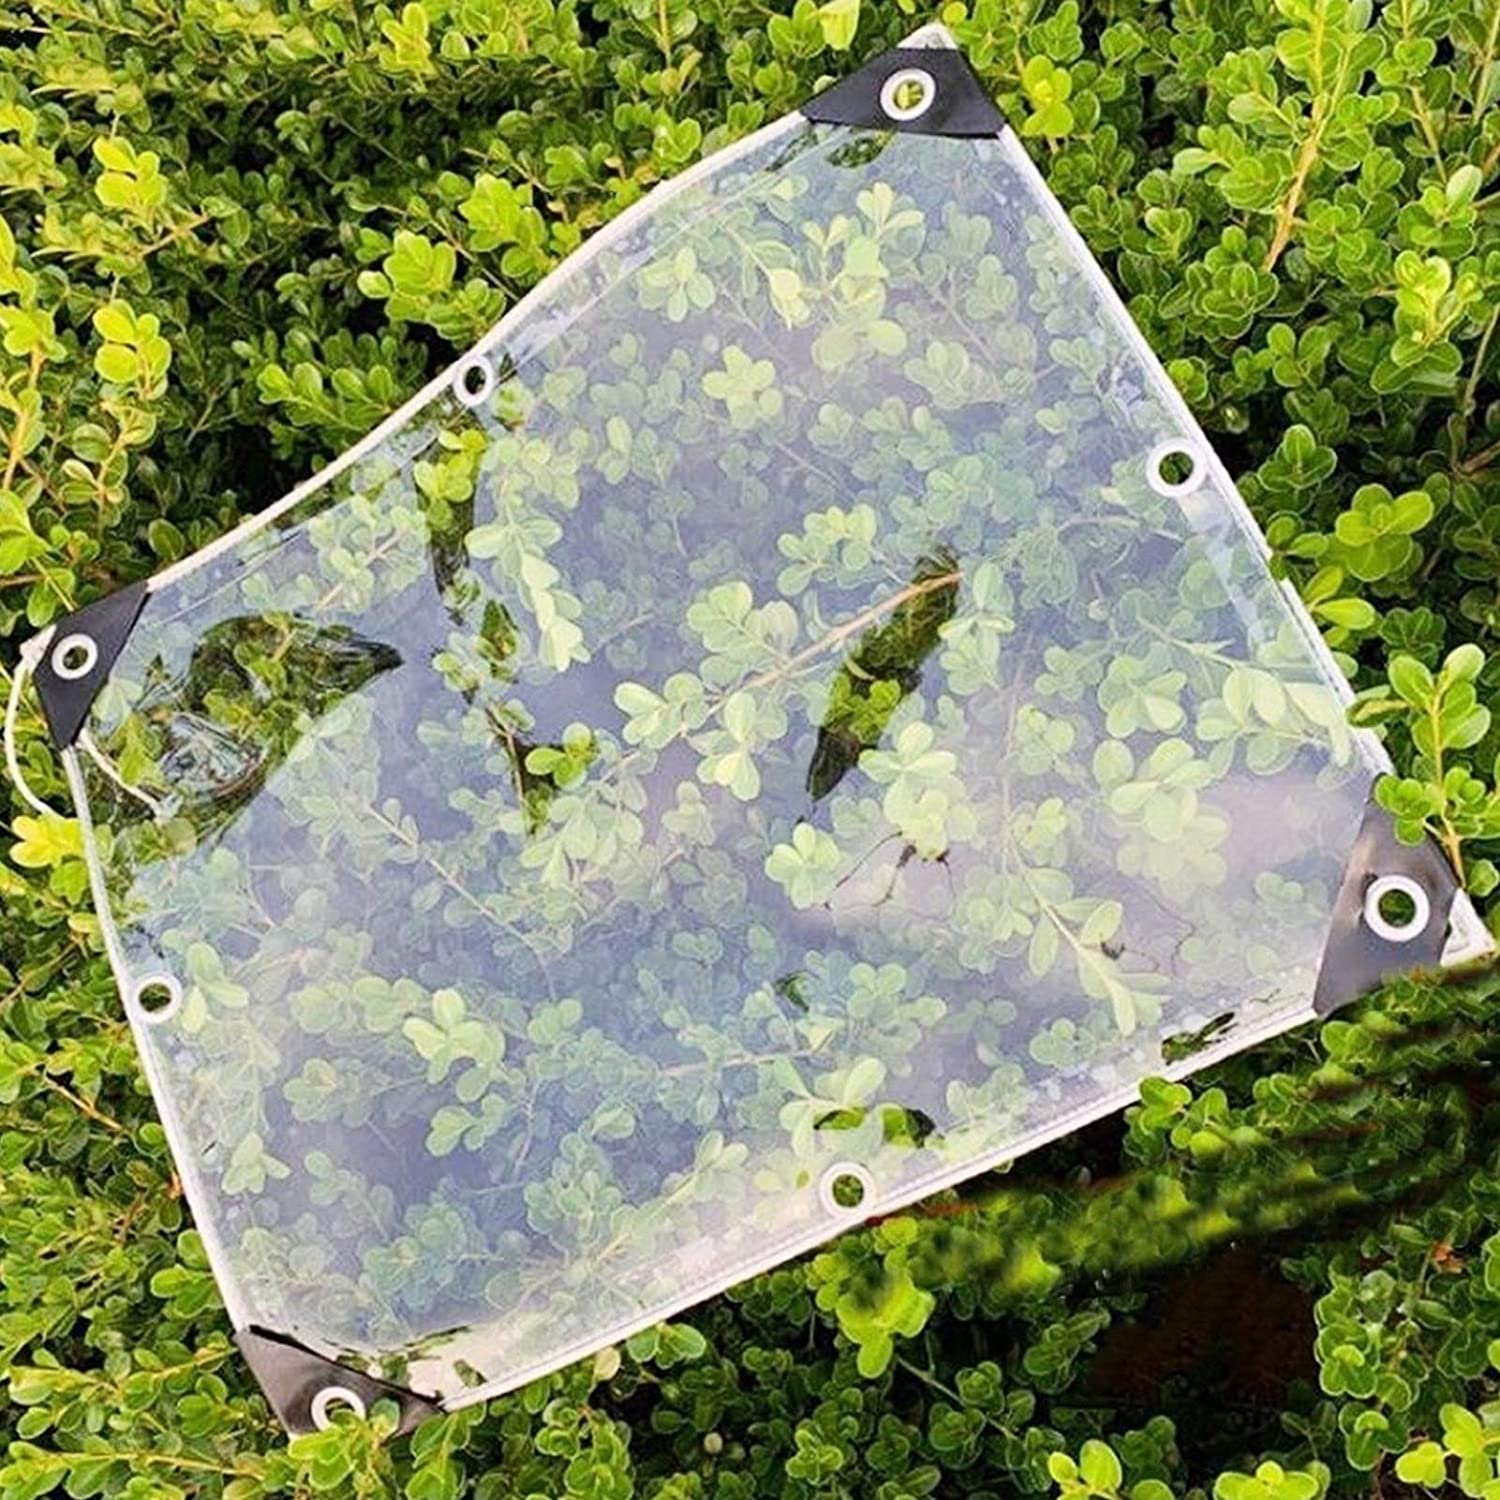 YANJINGYJ Max 45% OFF Heavy Duty Tarp Max 66% OFF Waterproof Transparent m² Cover 550g